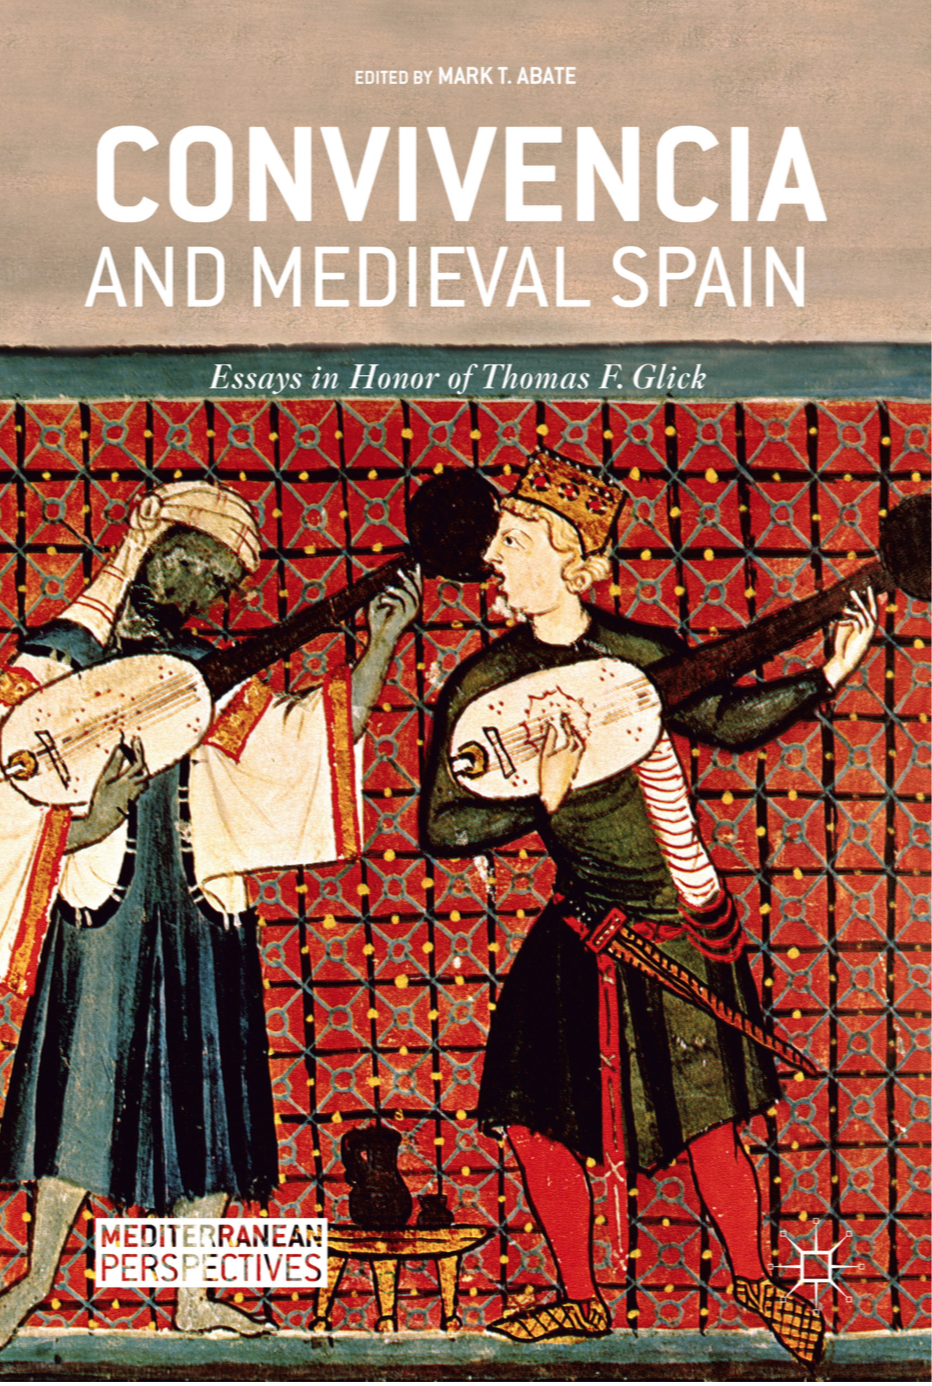 Convivencia and Medieval Spain.png